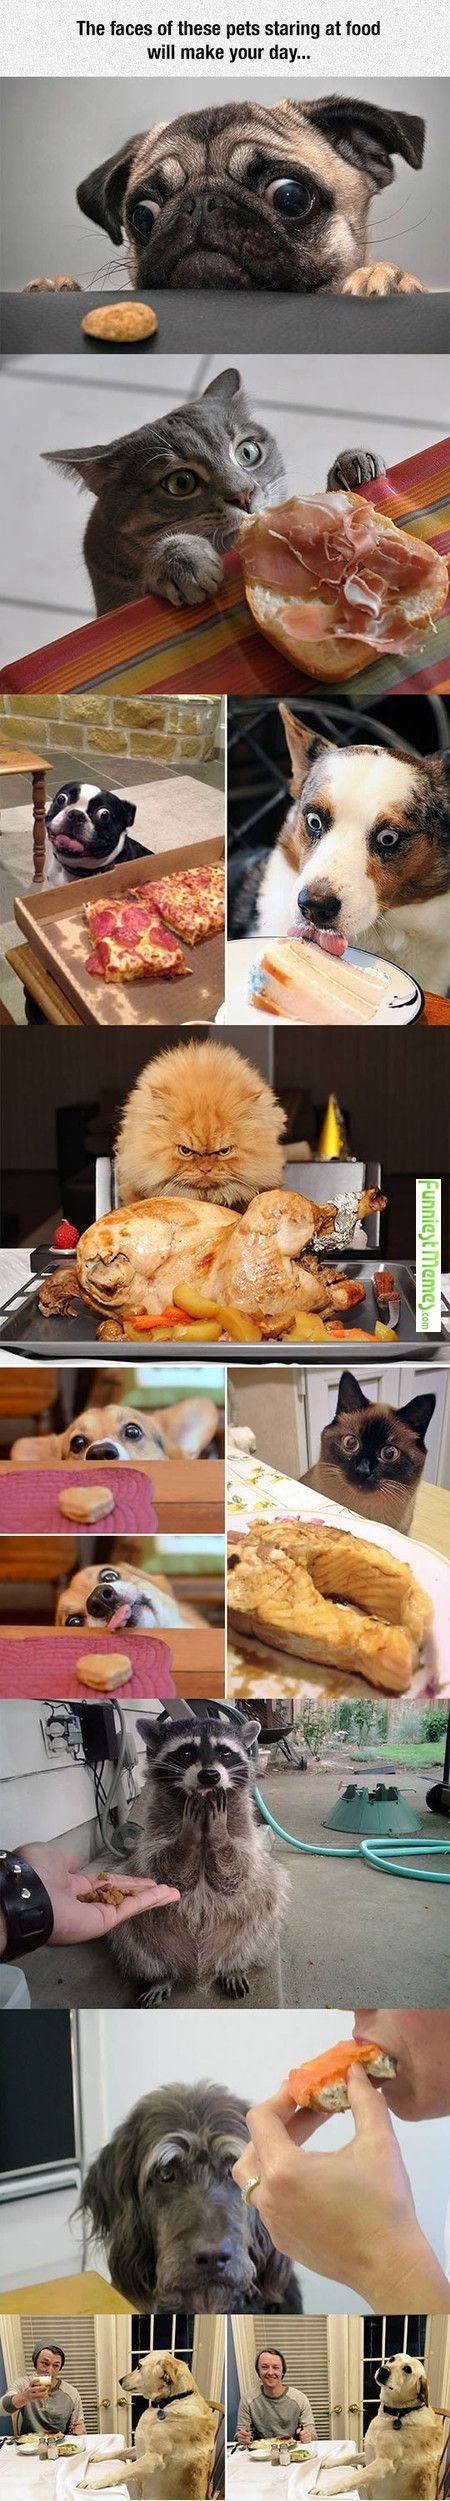 Haha that cat is so angry at the turkey!